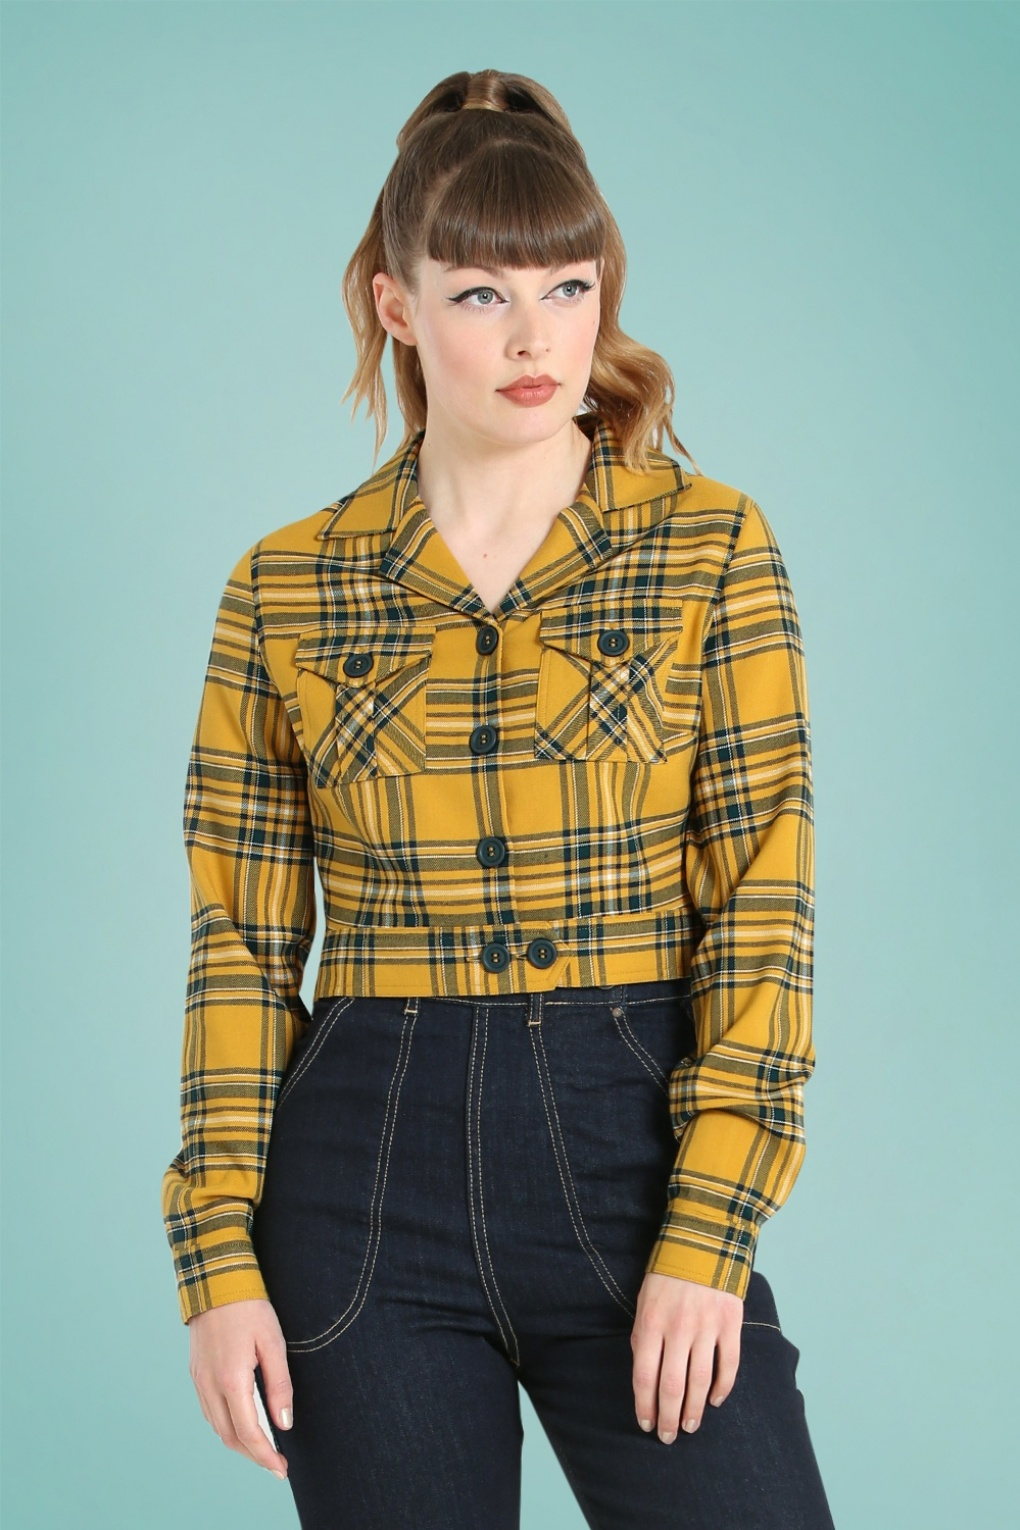 Vintage Coats & Jackets | Retro Coats and Jackets 50s Wither Jacket in Mustard £51.46 AT vintagedancer.com